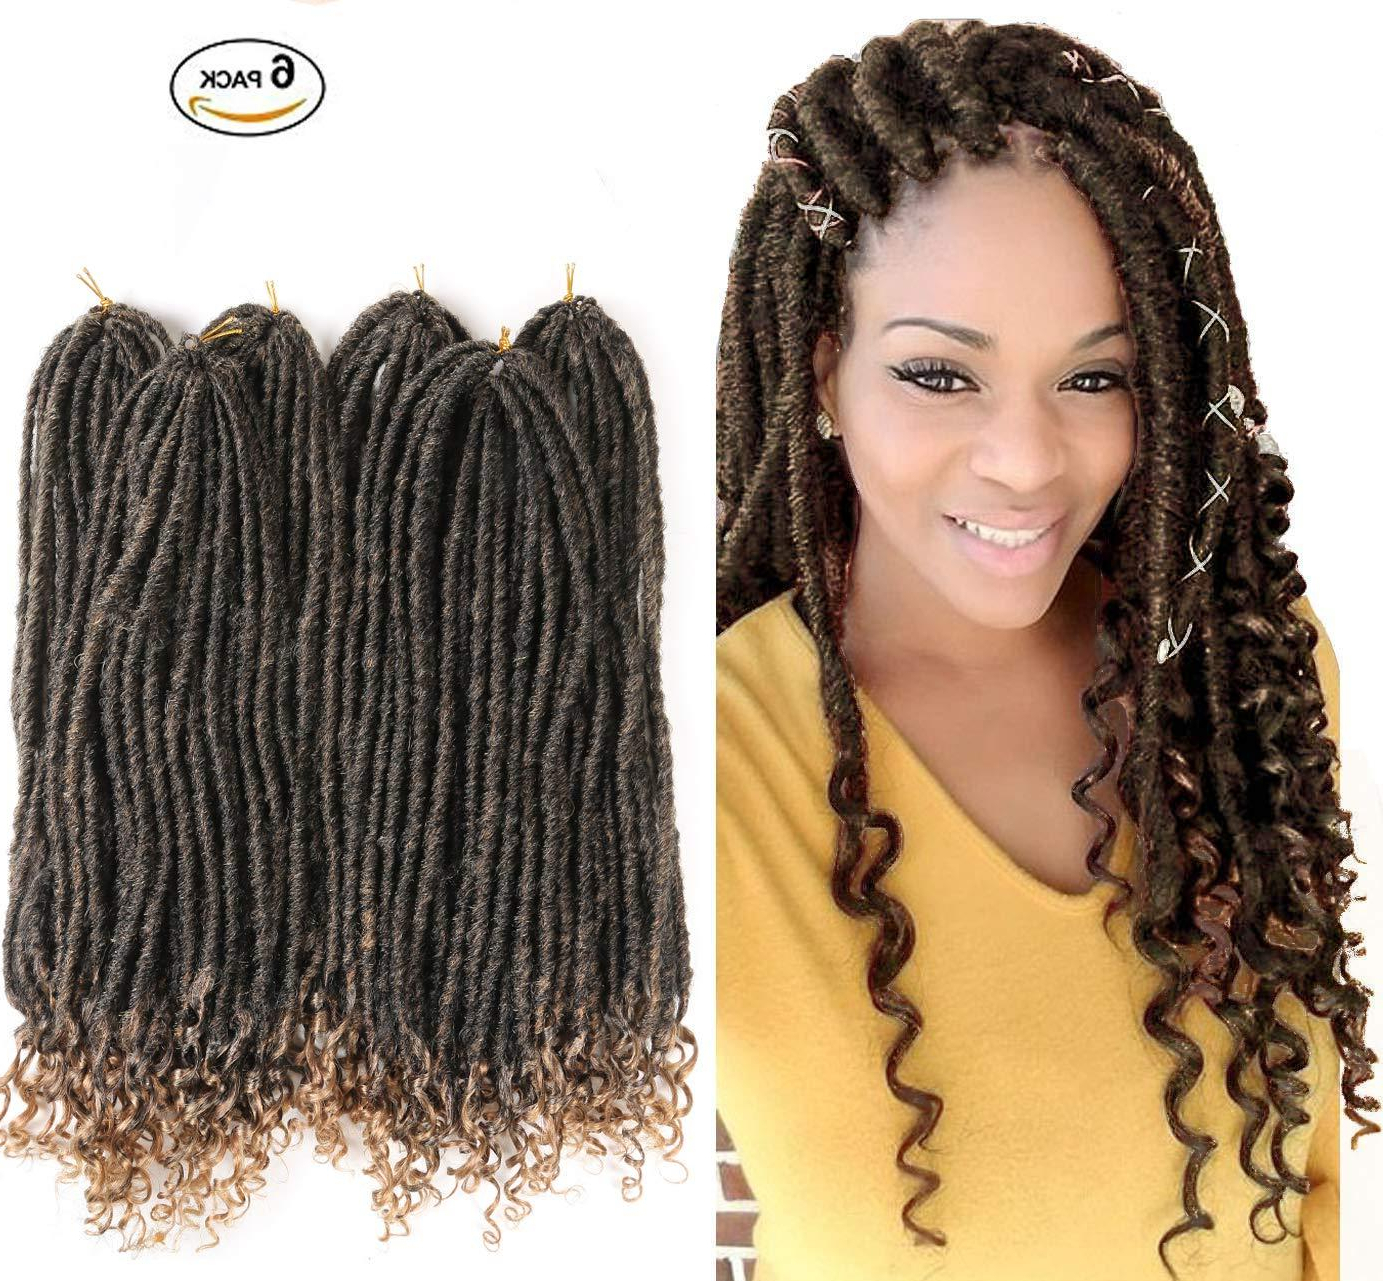 Goddess Locs Crochet Twist Hair With Curly Ends 24Strands/pack Braiding  Hair Extensions Dreadlocks Crochet Locs 1Packs/lot 18Inches In Current Twists Micro Braid Hairstyles With Curls (View 8 of 20)